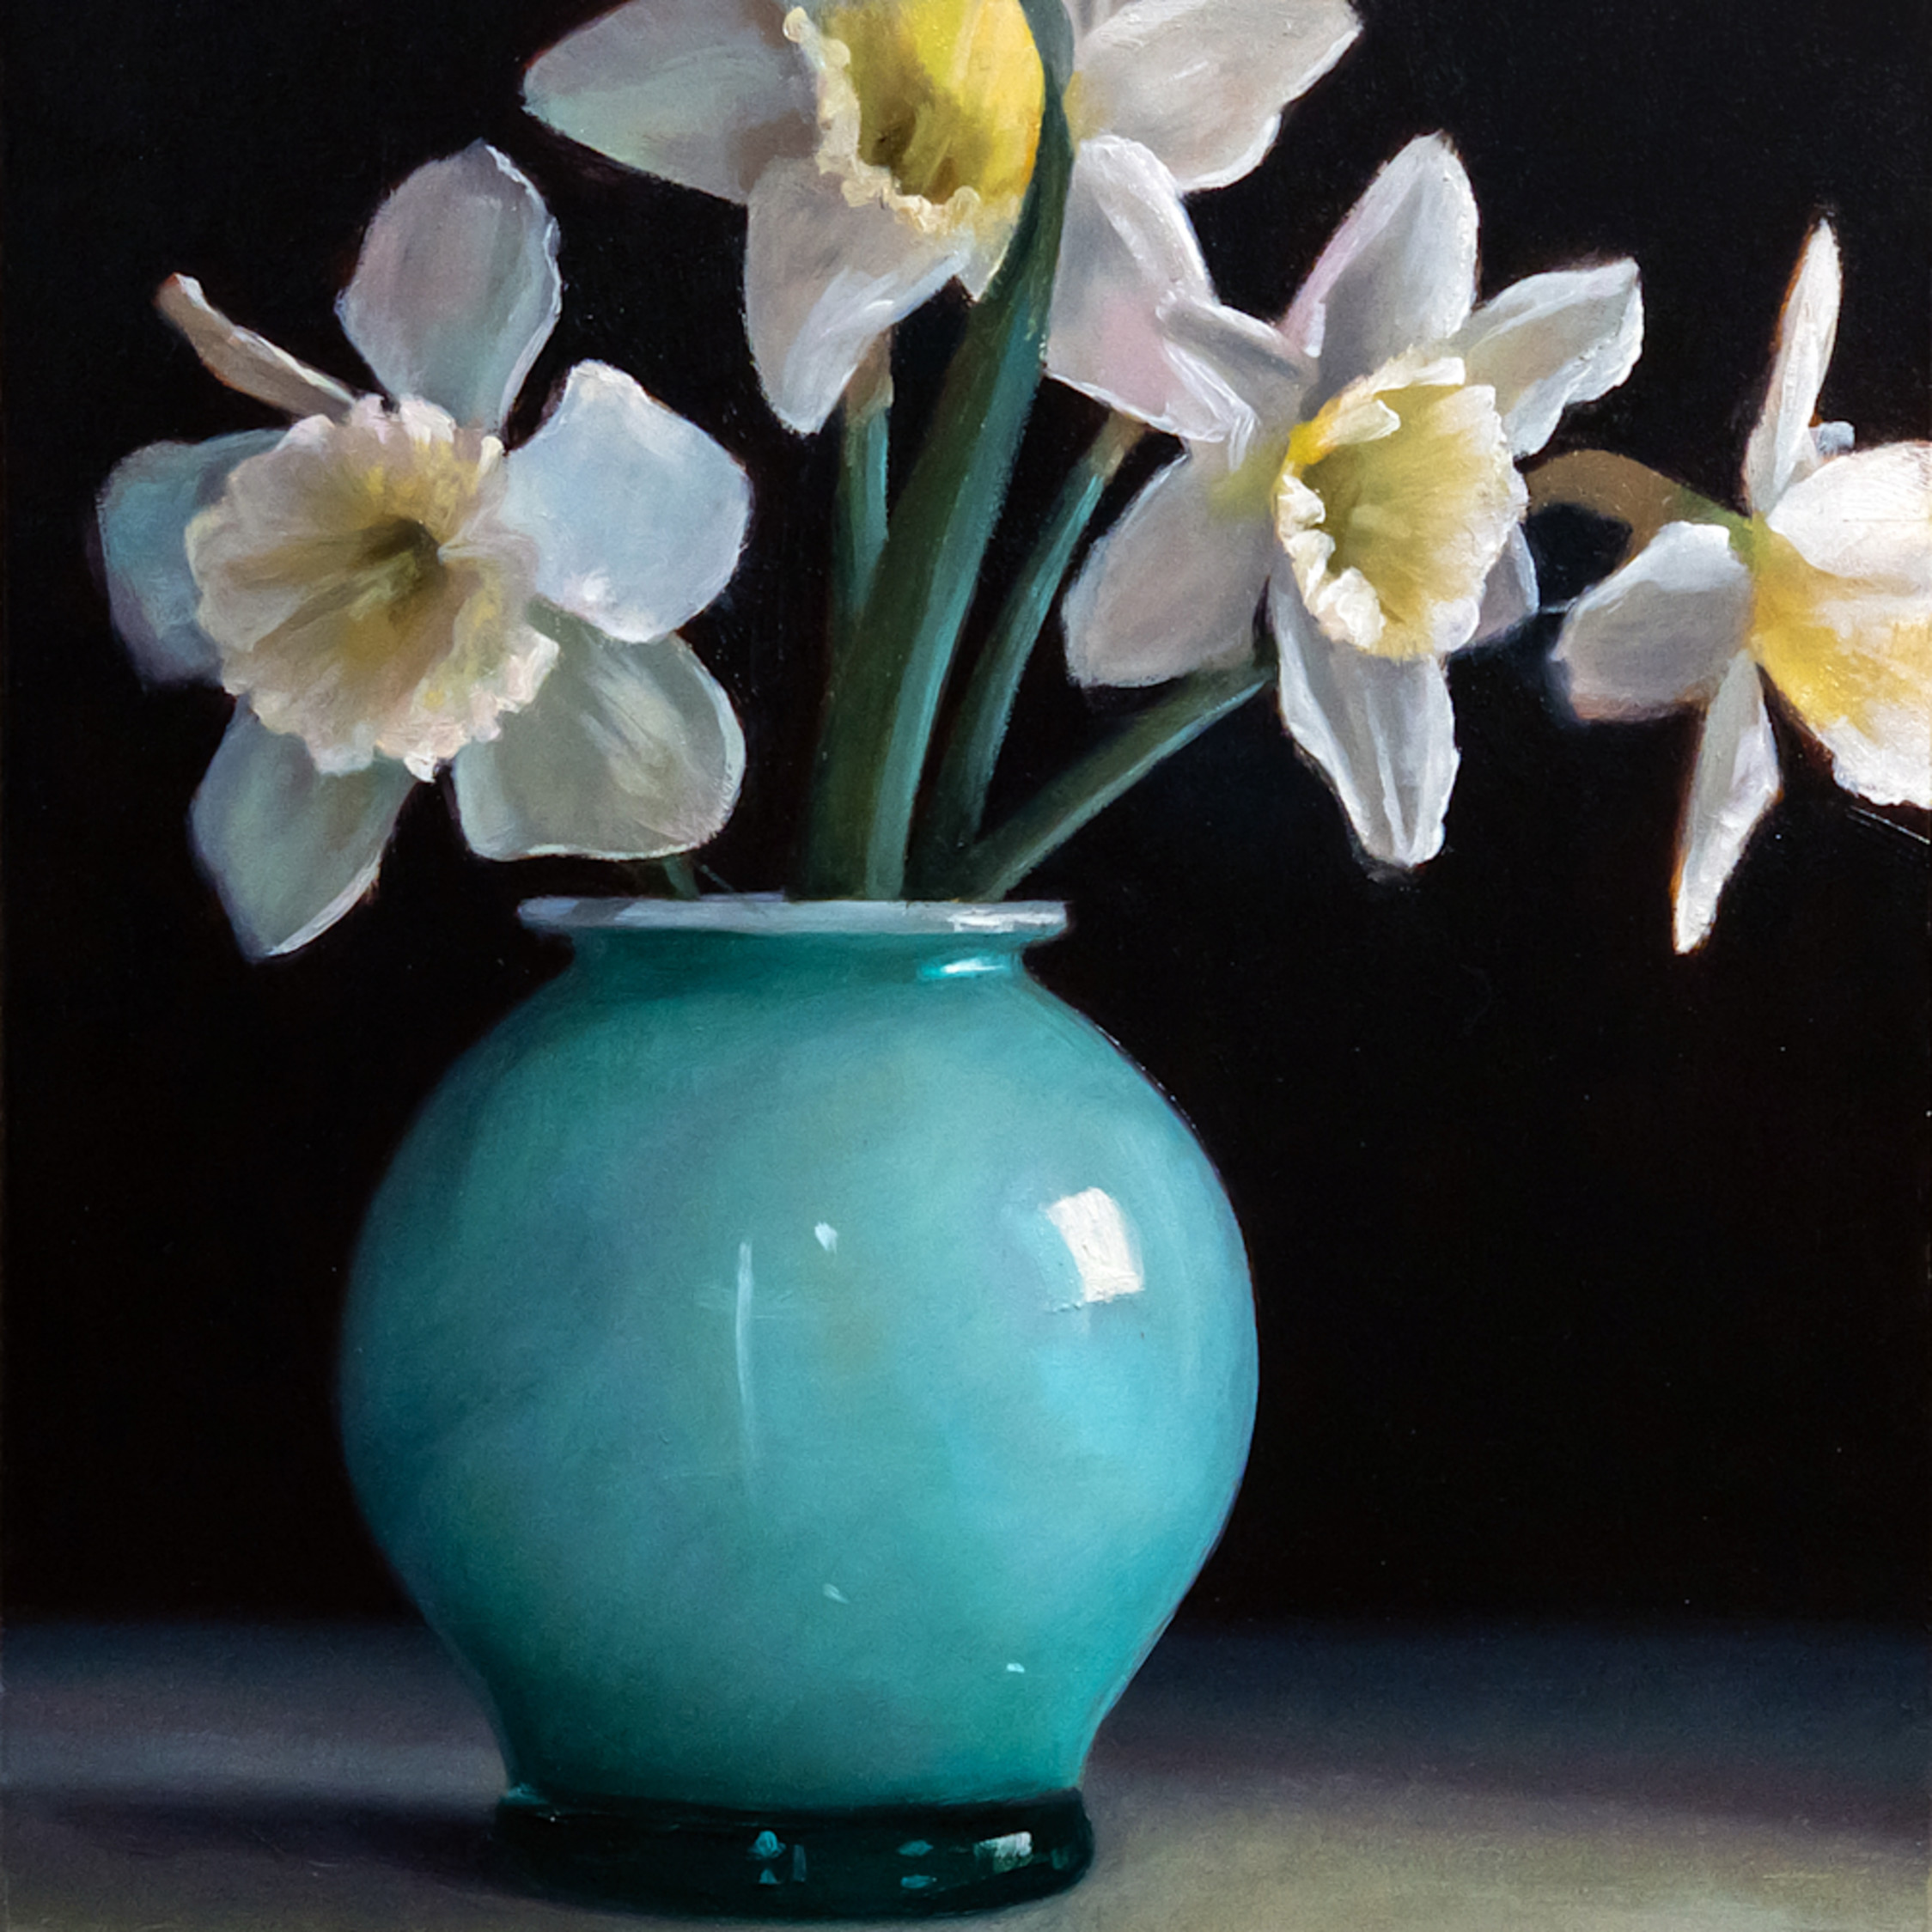 Daffodils in turquoise vase r1dewv